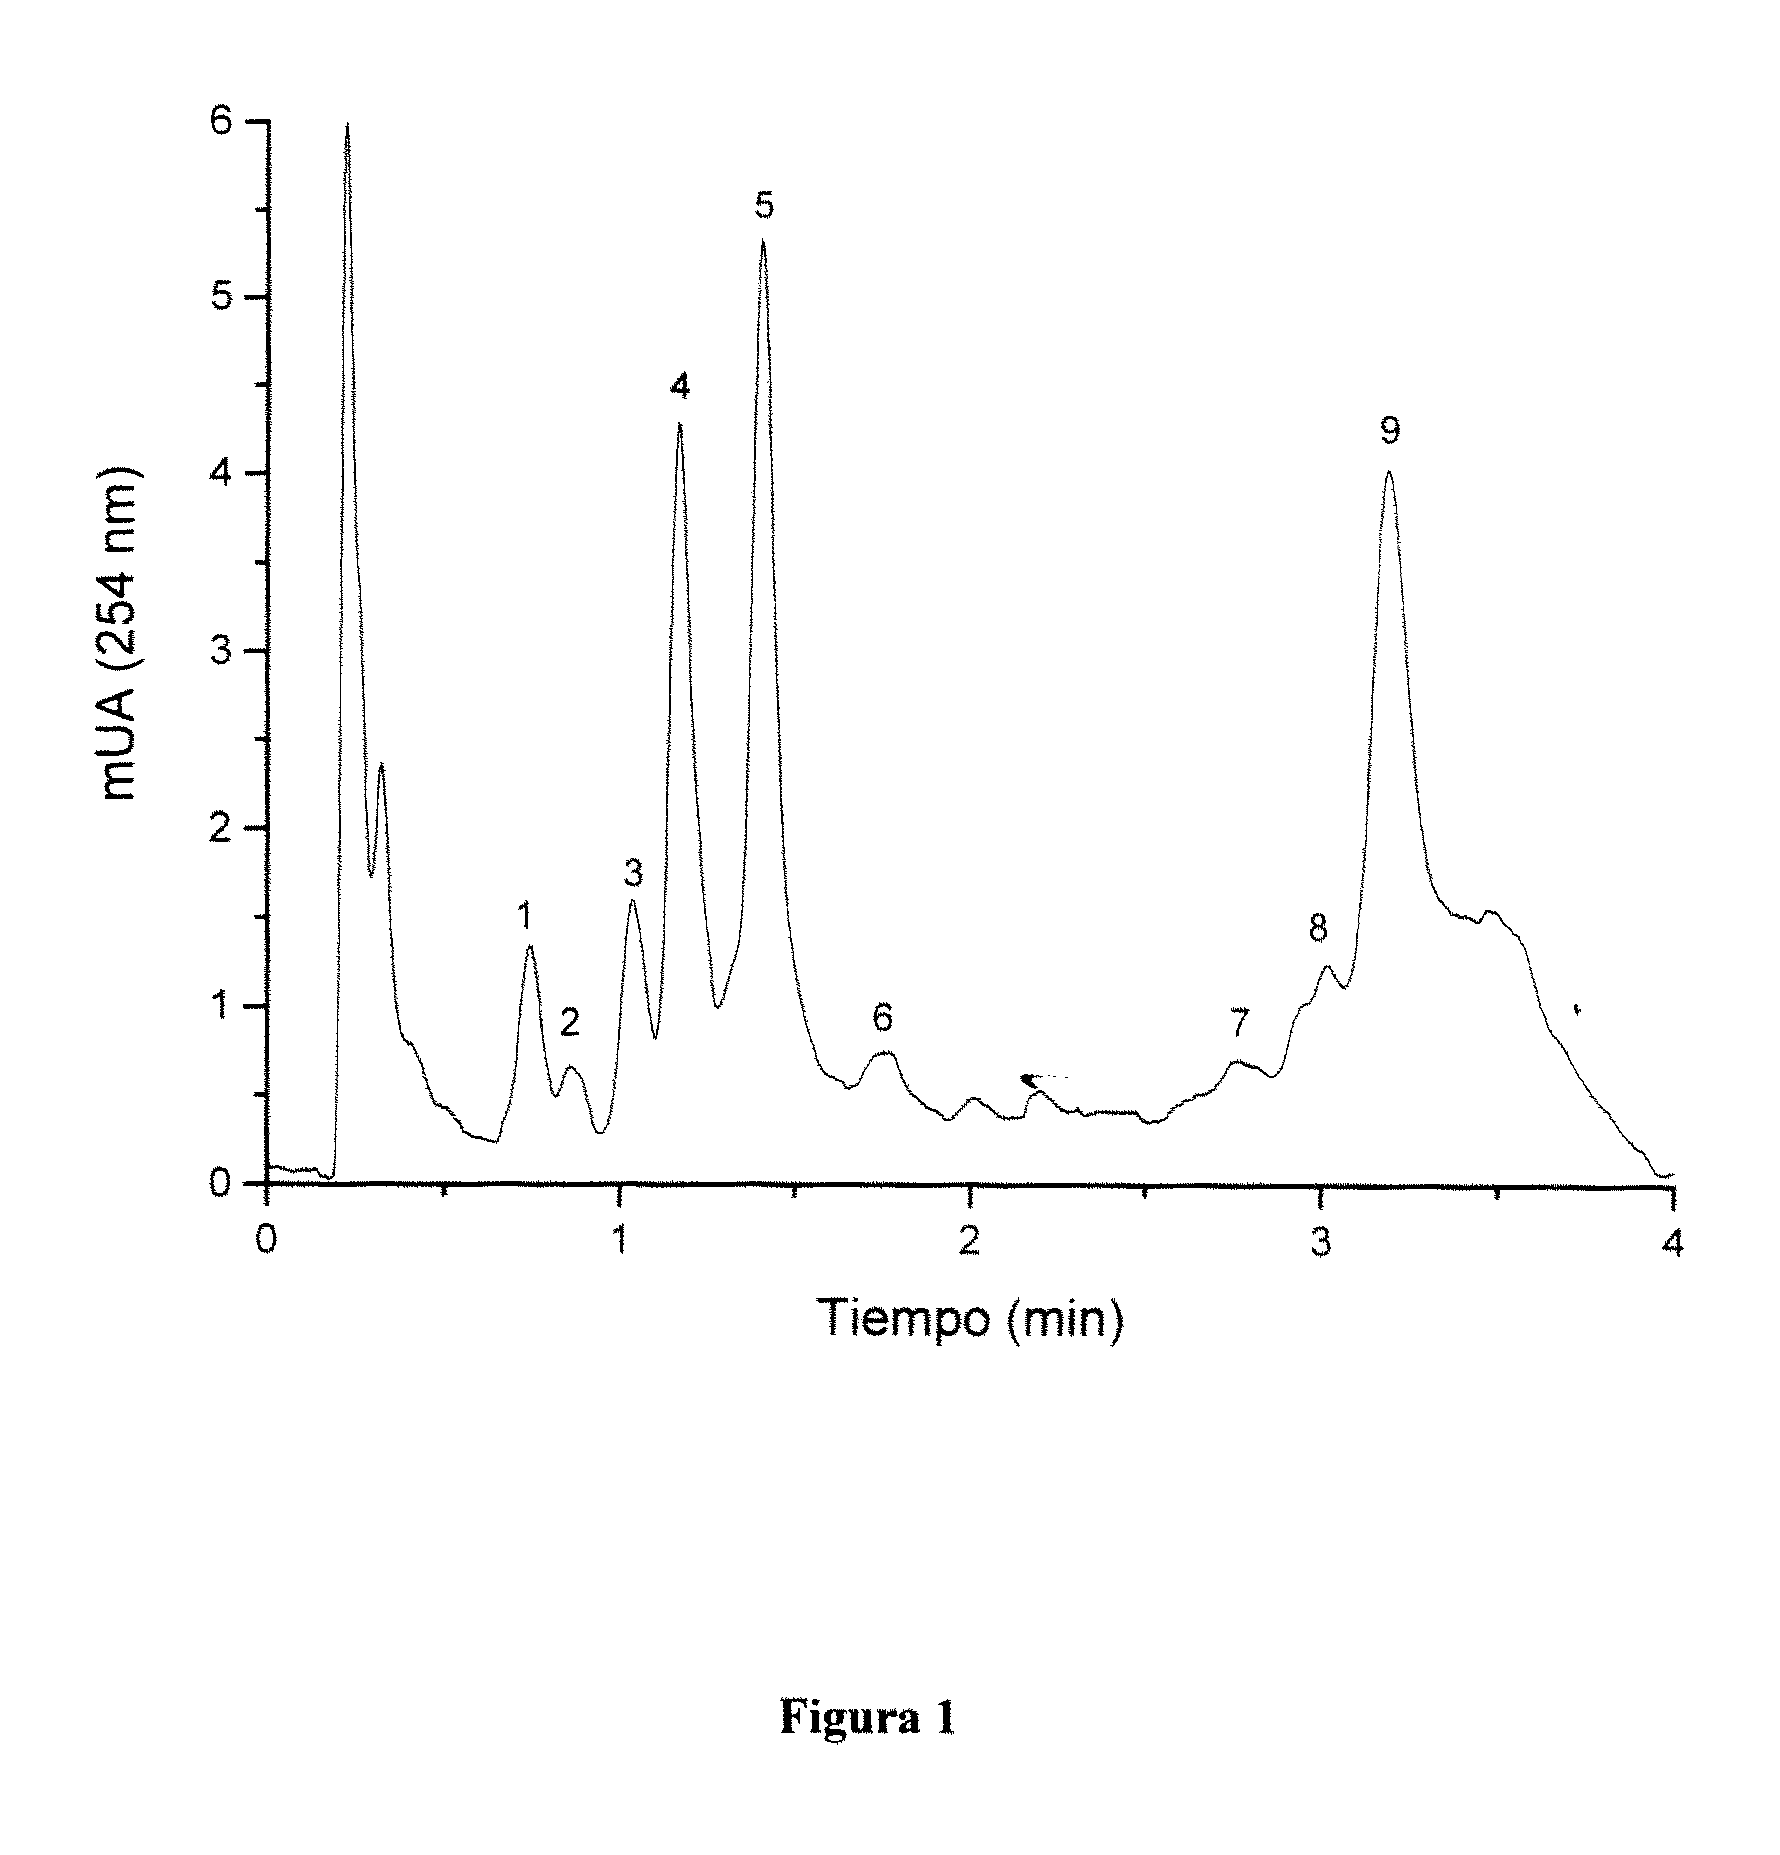 Procedure for estimating the content of 7S and 11S globulins in soybeans by Perfusion reversed-phase high-performance liquid chromatography.